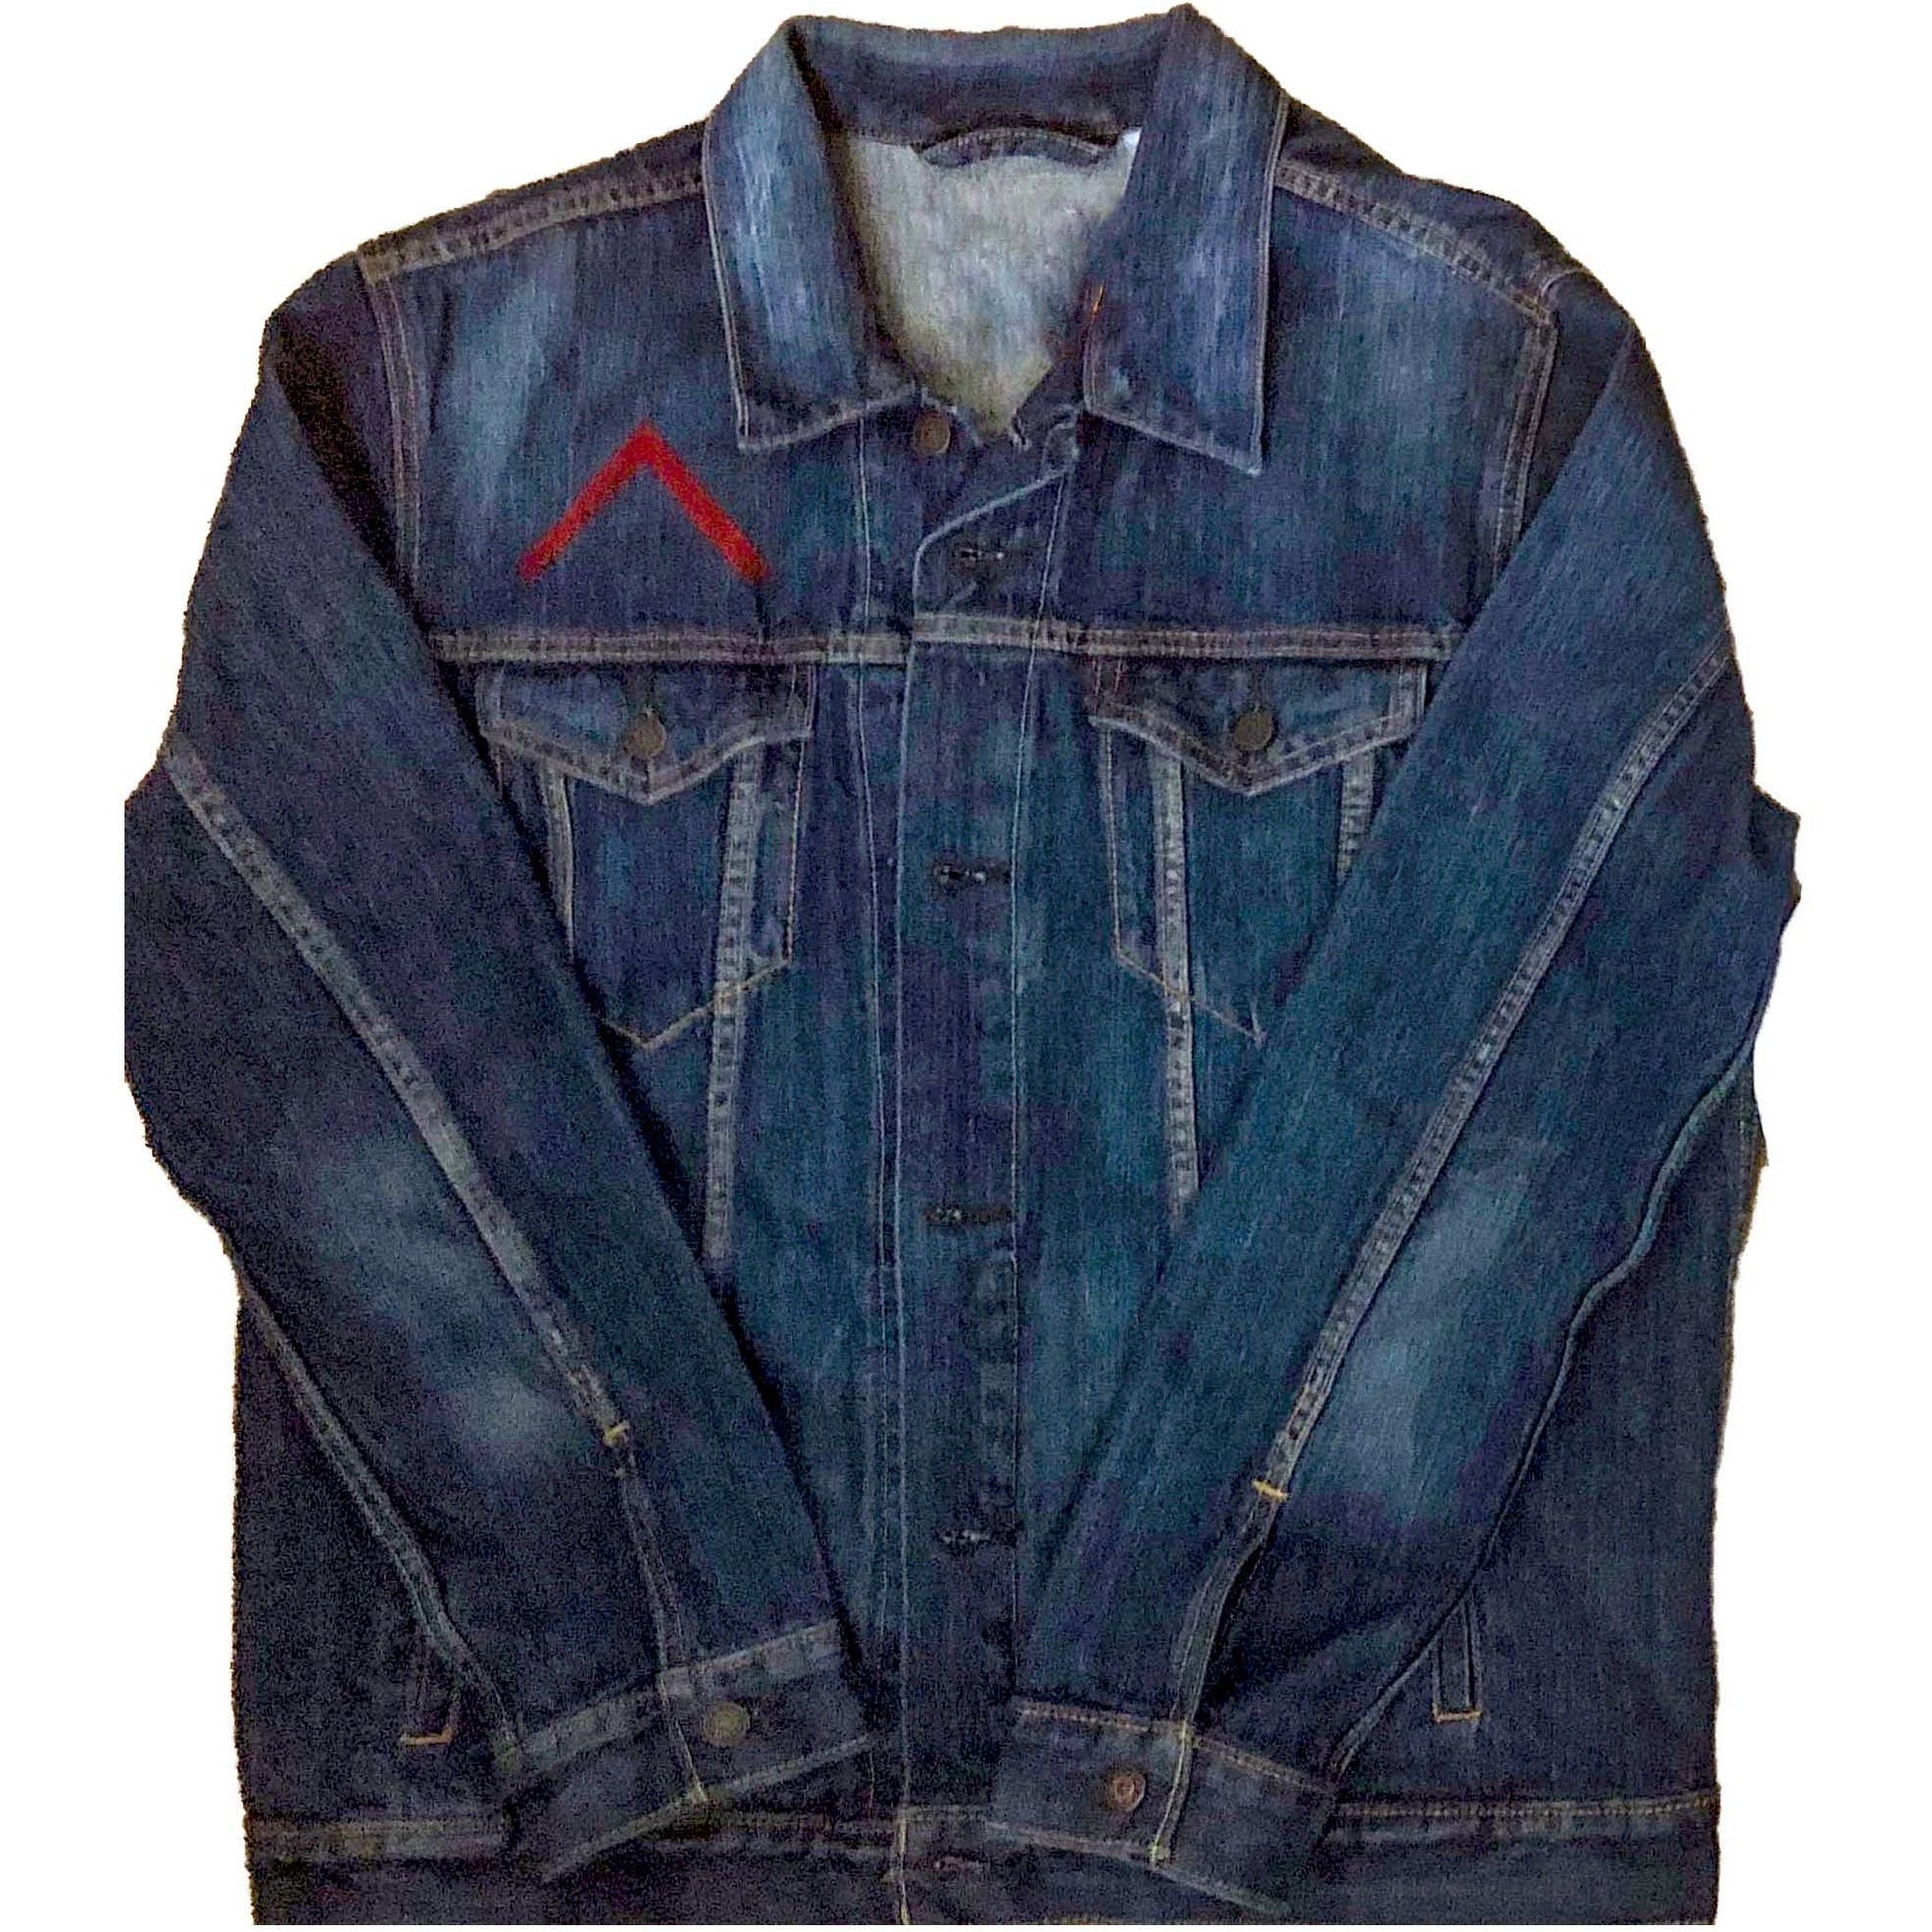 "Laced Society ""Signature Logo"" Denim Jacket"